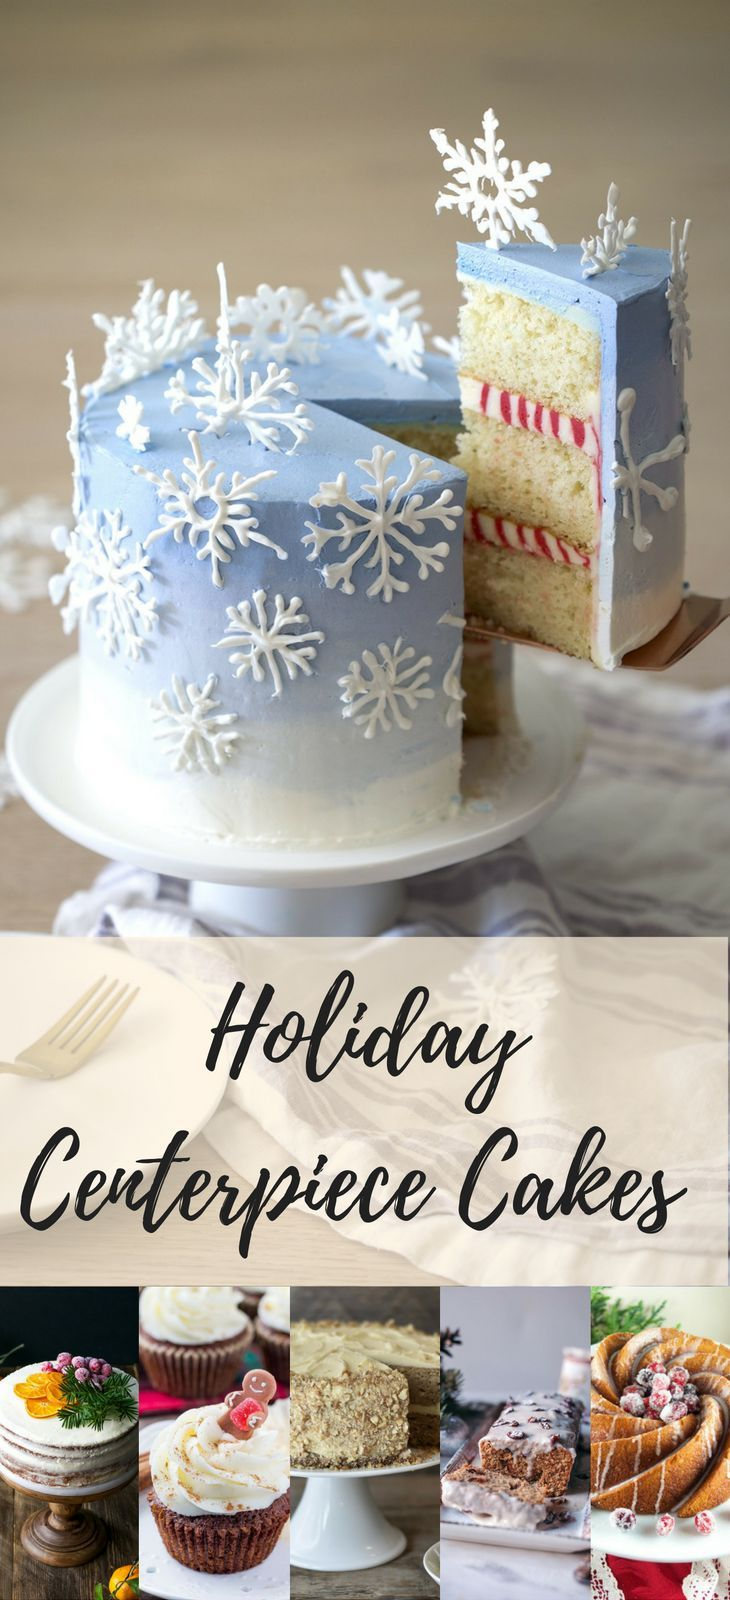 Looking for a dessert to complete your dessert table? What better way to please and wow your guest than with a festive Holiday cake?  To make your decision easier I have narrowed it down to the top ten Holiday Cakes out there! Recipes | Desserts | Christmas | Holiday Cakes | Cake Recipes | Christmas Recipes| Christmas Cakes